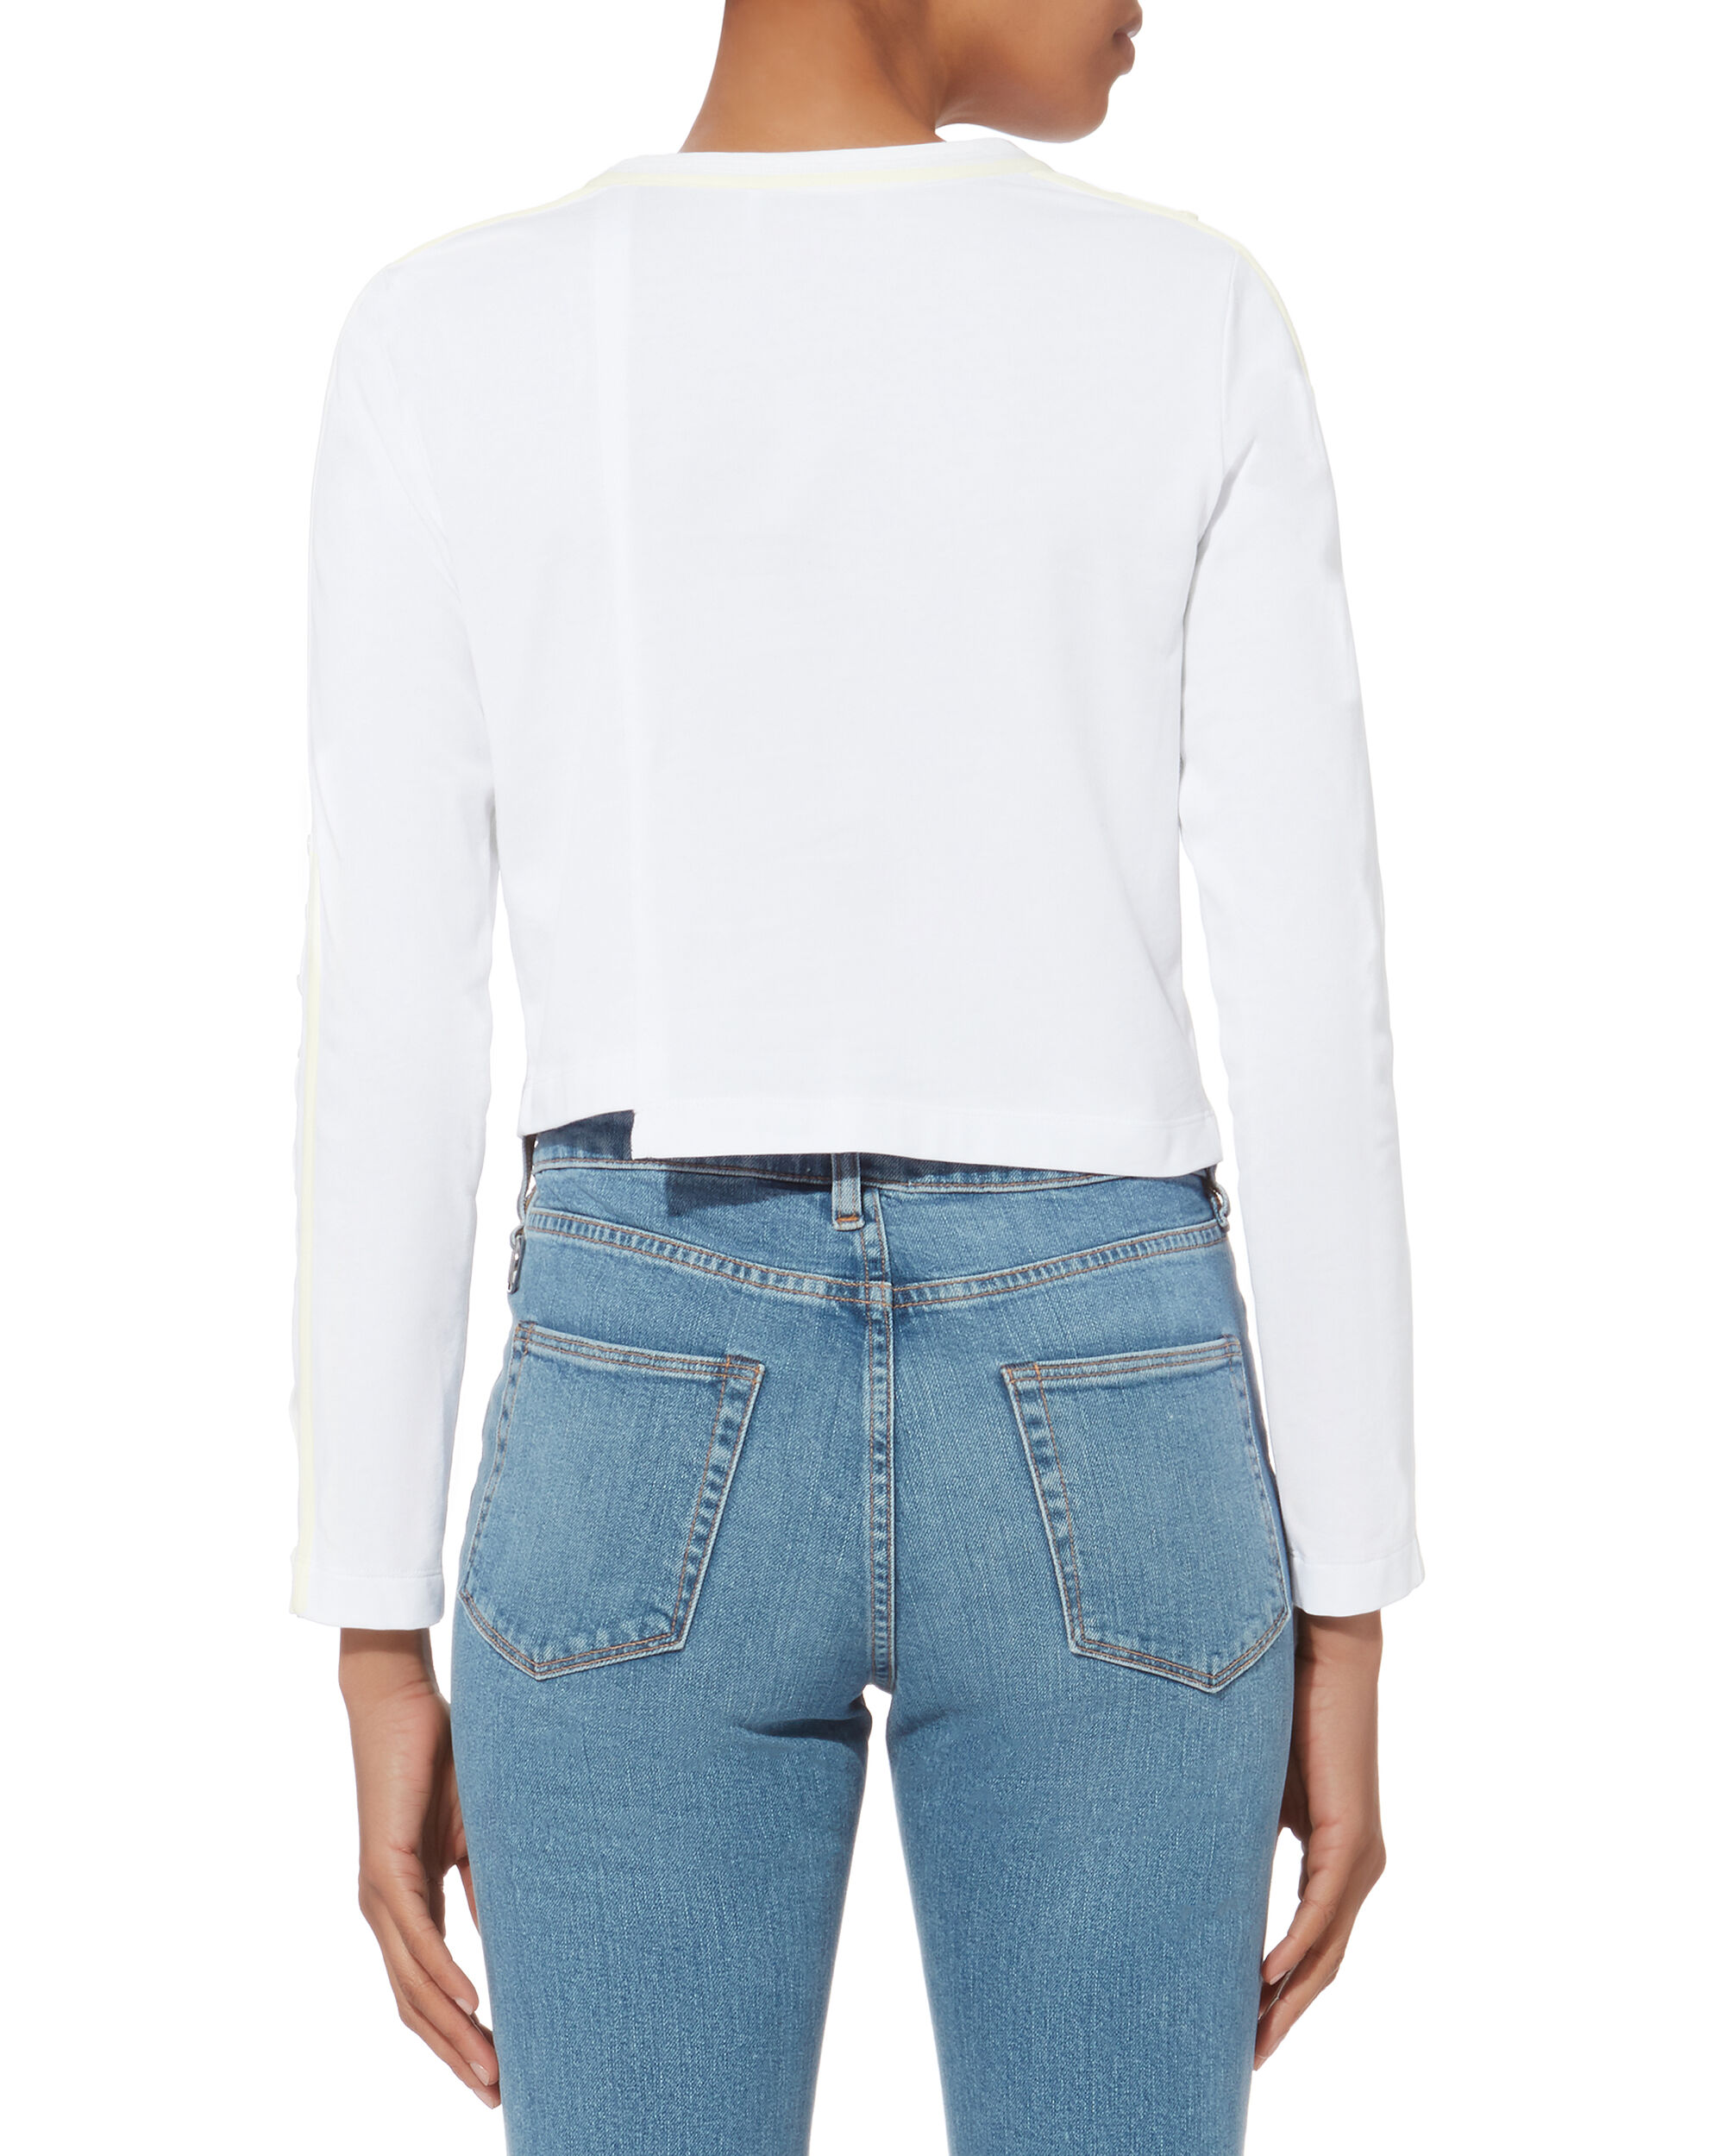 Button-Embellished Cropped T-Shirt, WHITE/IVORY, hi-res